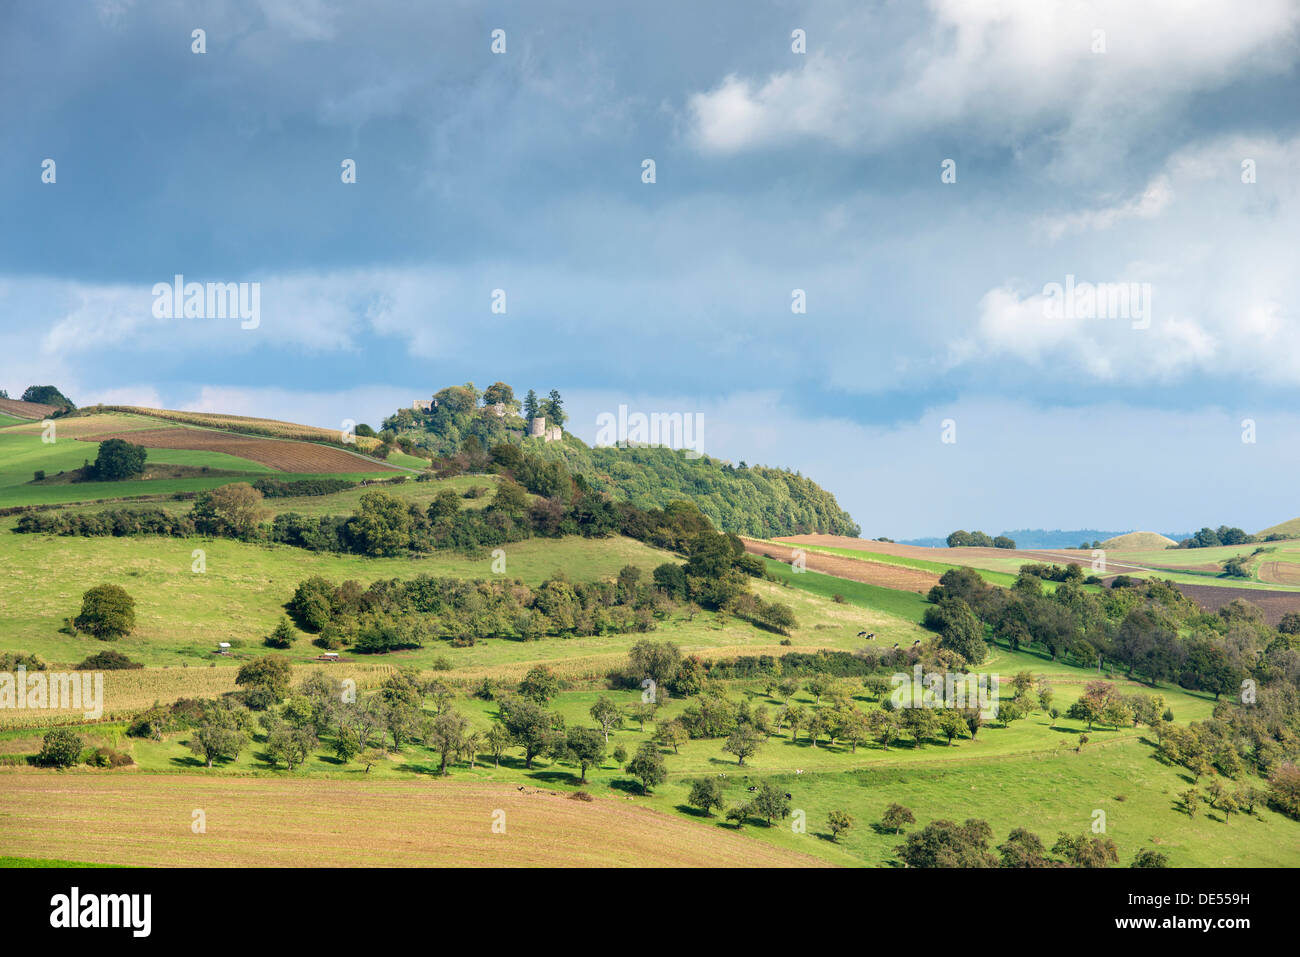 Agricultural land in the hills of the Hegau region with fields, orchards and pastures, Maegdeberg hill with castle ruins at back - Stock Image